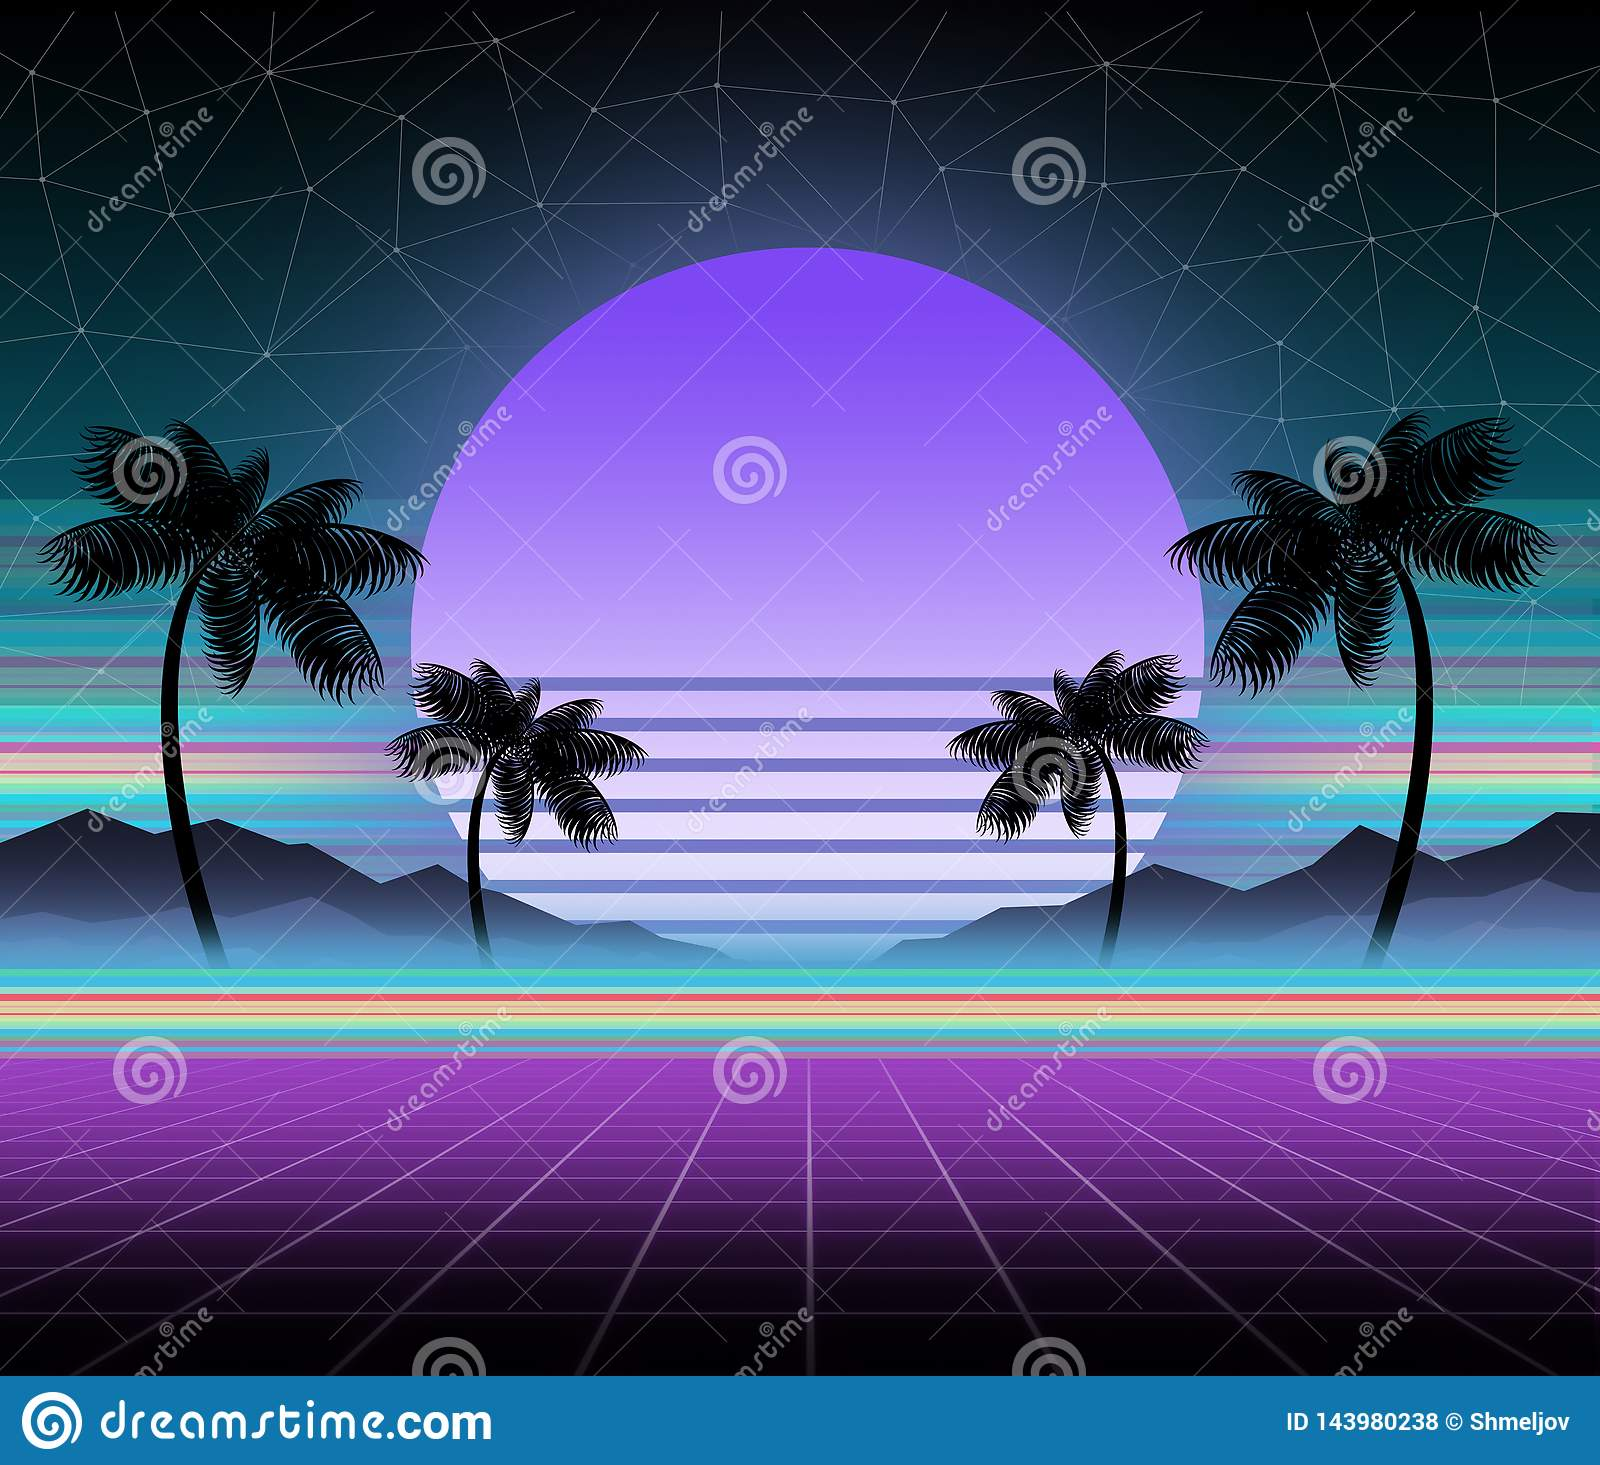 Glowing Neon, Synthwave And Retrowave Background Template